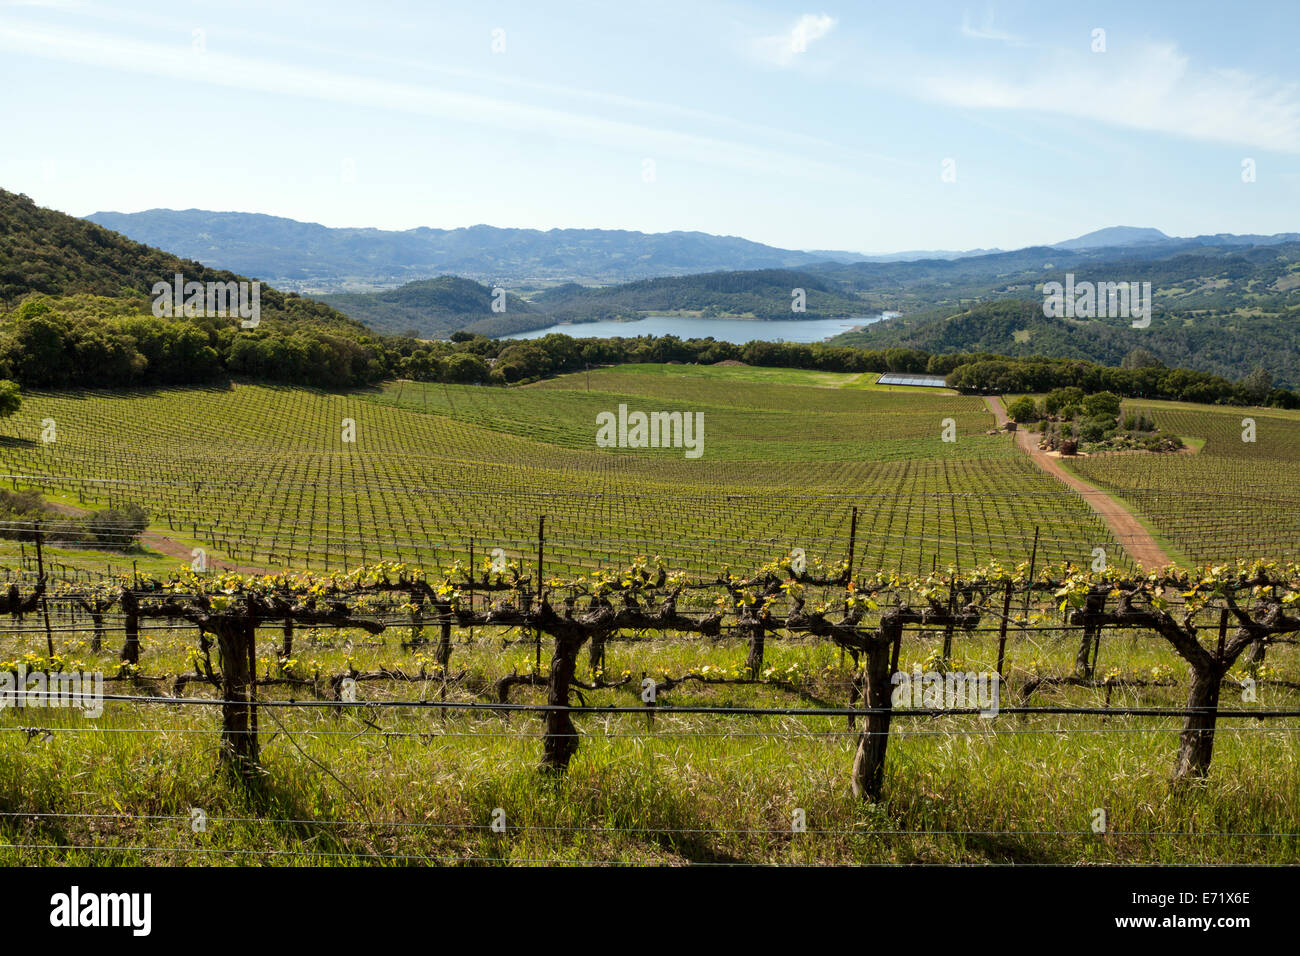 Lake Hennessey viewed from Continuum Estate, Napa Valley, California, USA - Stock Image